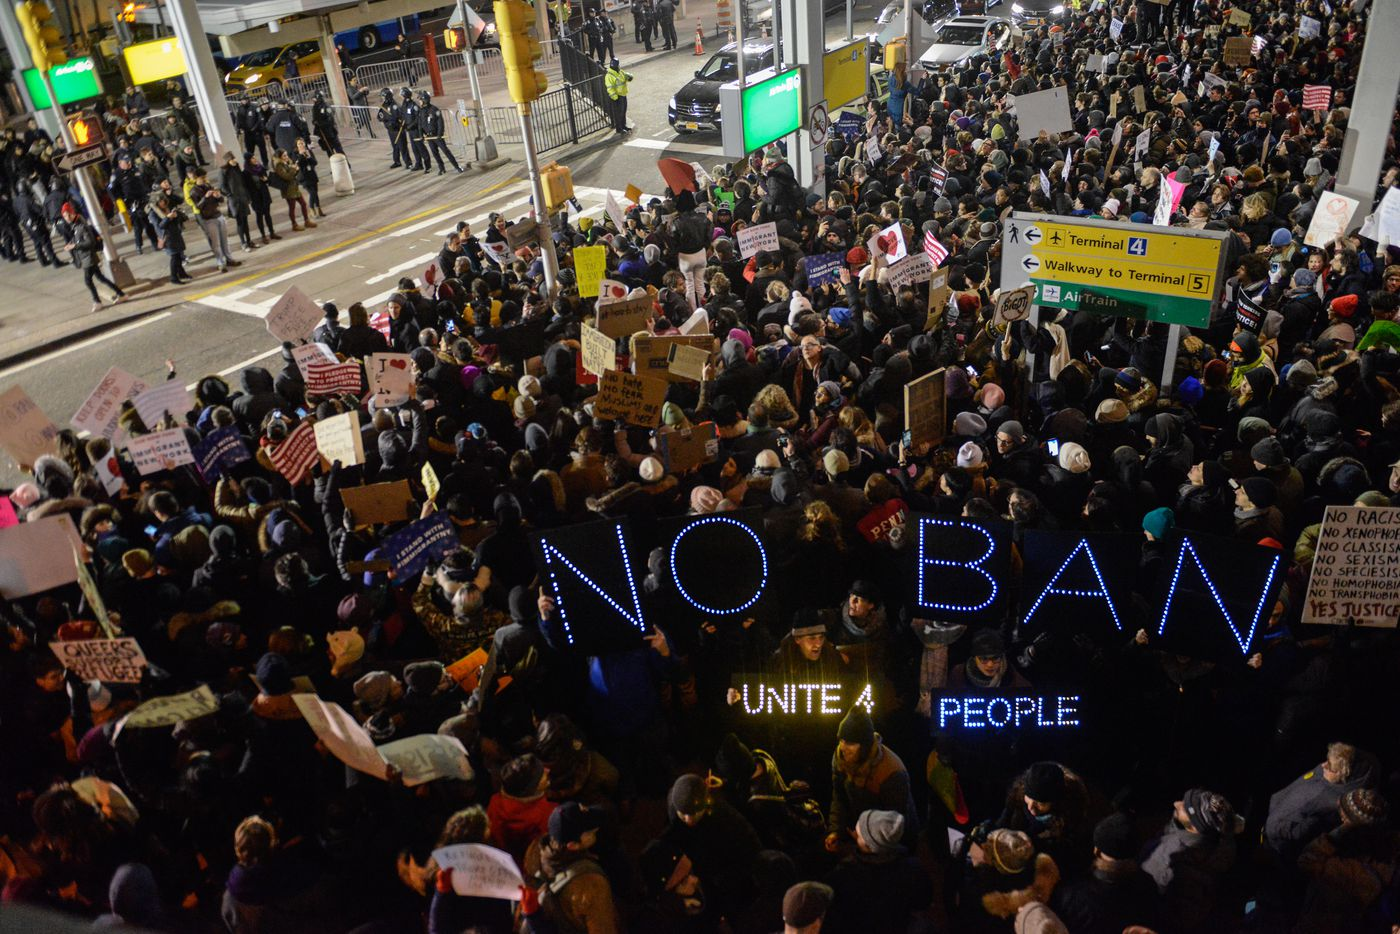 Protestors rally  during a demonstration against the Muslim immigration ban at John F. Kennedy International Airport on January 28, 2017 in New York City. President Trump signed the controversial executive order that halted refugees and residents from predominantly Muslim countries from entering the United States.